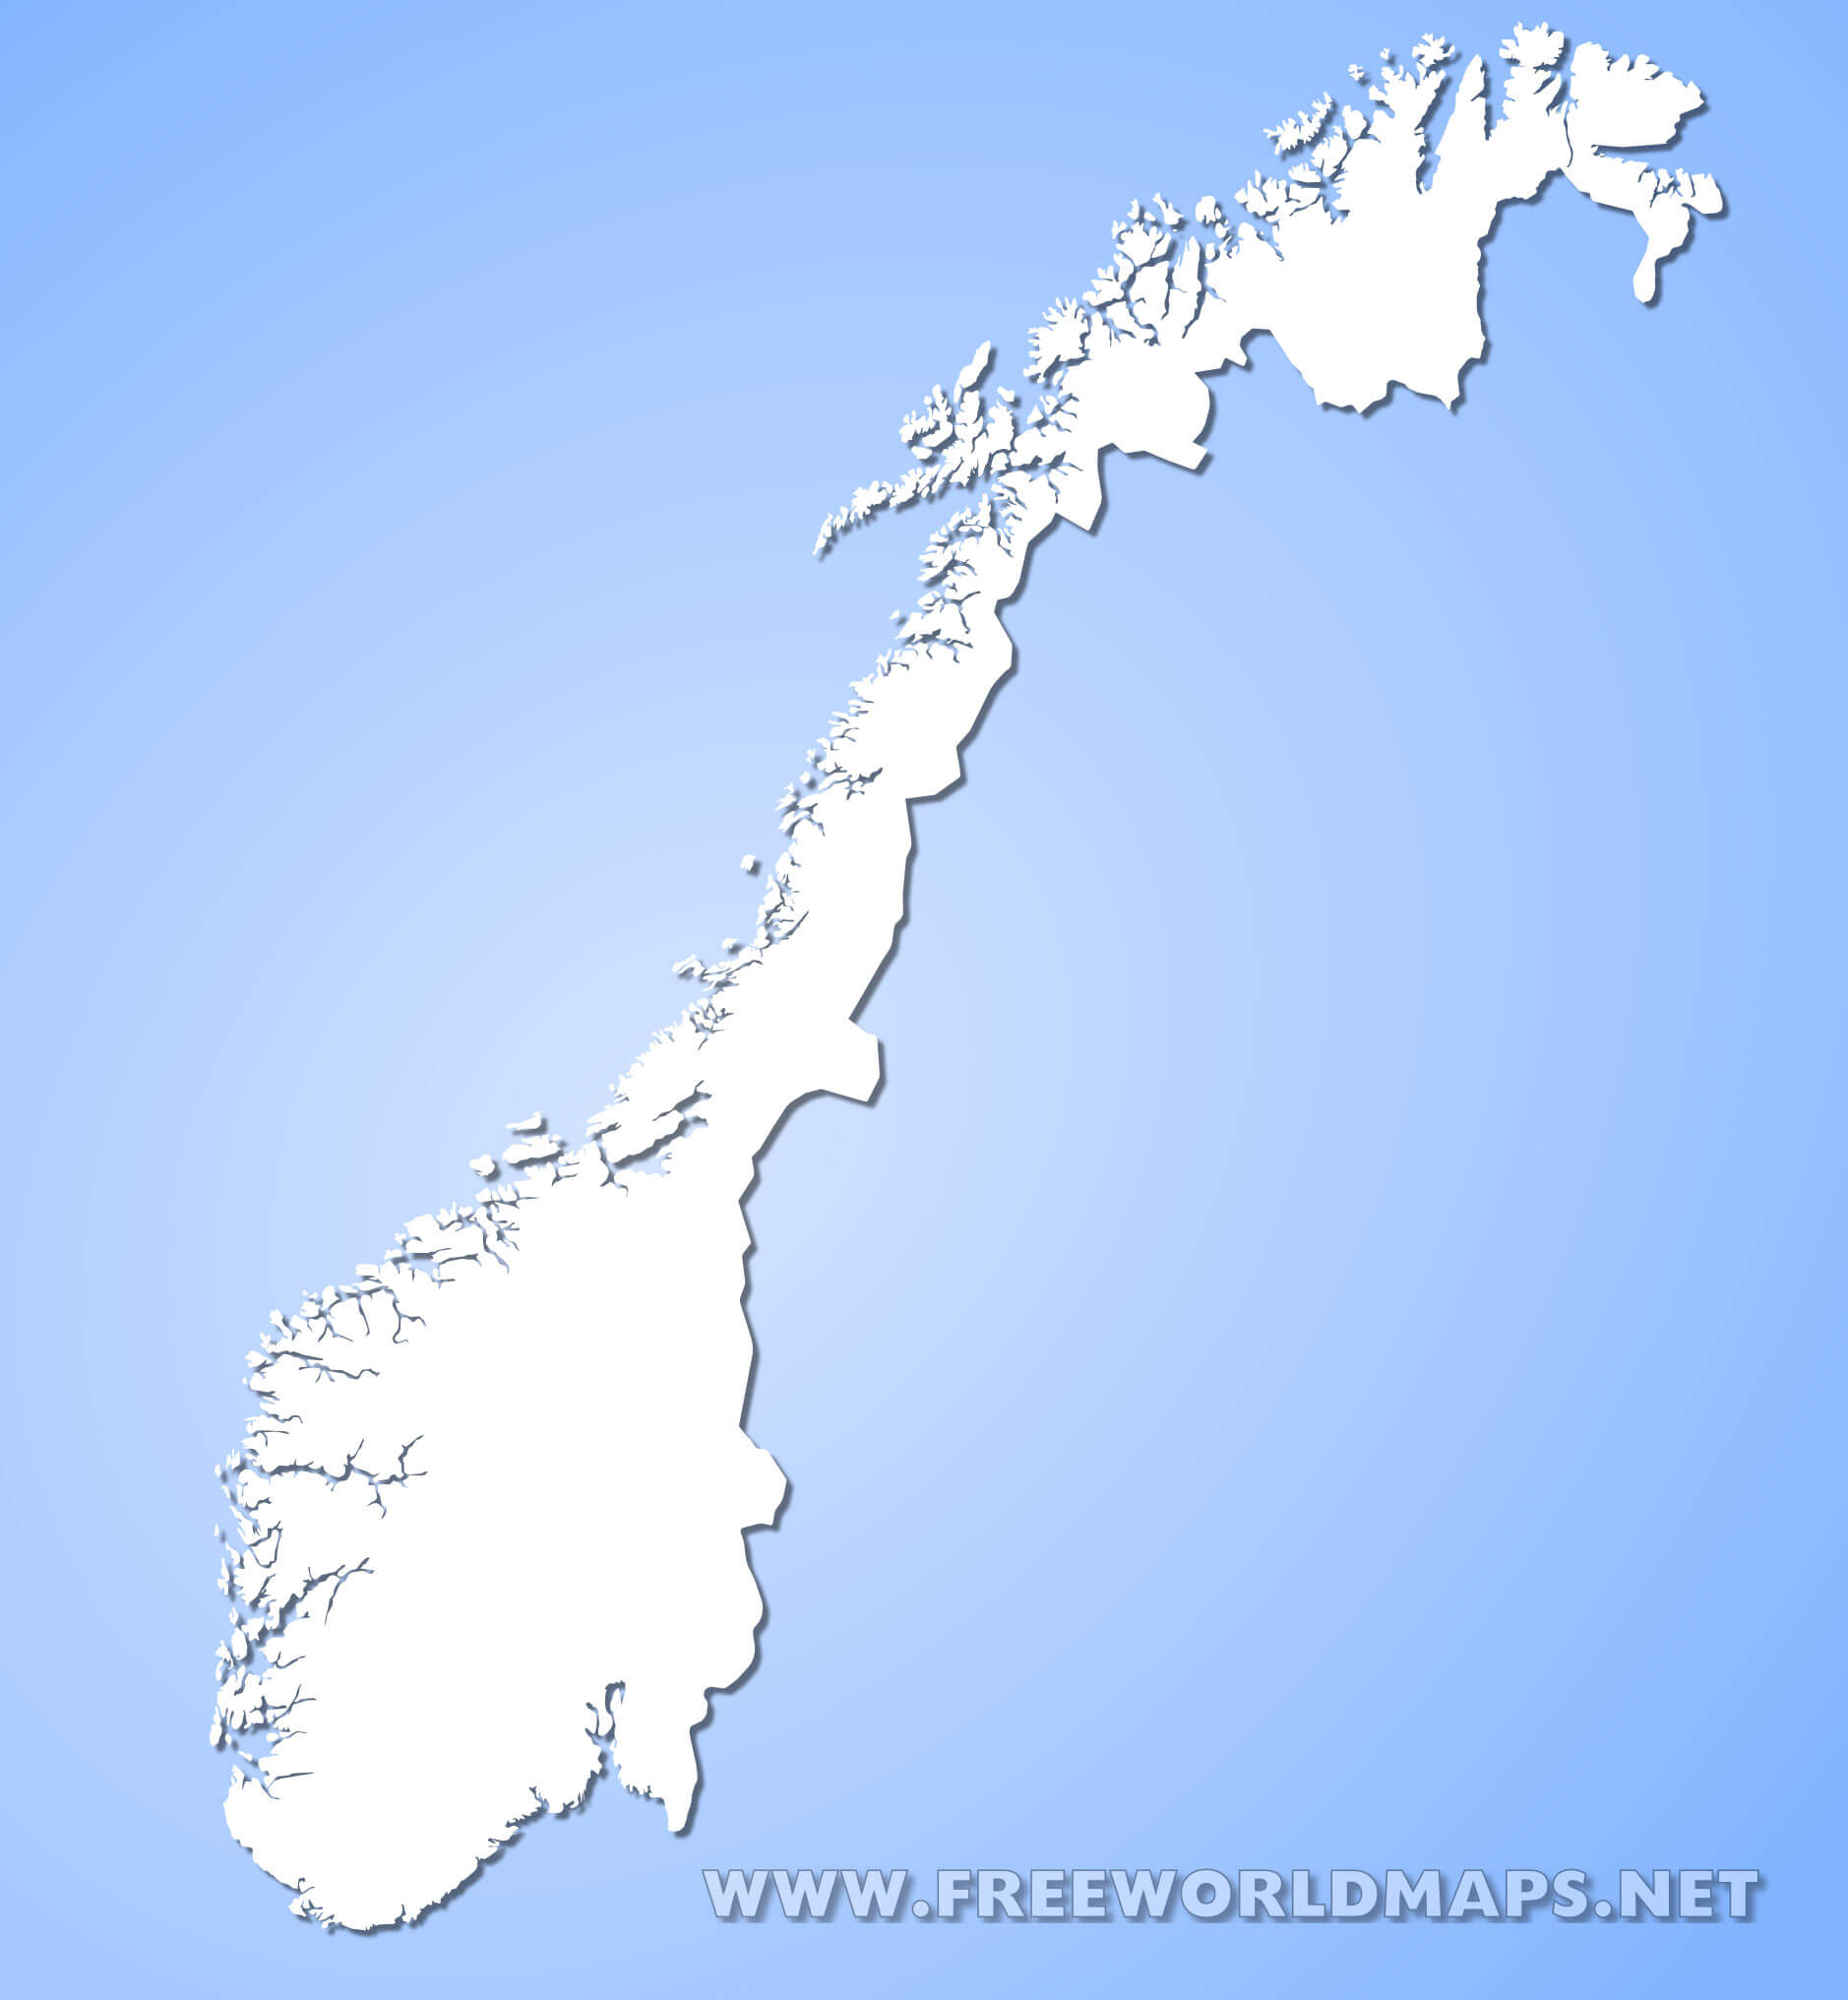 Norway Political Map on blank outline map of southeast asia, blank outline map of the us, blank outline map of new zealand, blank outline map of luxembourg, blank outline map of british isles, blank outline map of united states, blank outline map of argentina, blank outline map of central asia, blank outline map of former yugoslavia, blank outline map of west africa, blank outline map of south asia, blank outline map of soviet union, blank outline map of ethiopia, blank outline map of western hemisphere, blank outline map of ukraine, blank outline map of western europe, blank outline map of north korea, blank outline map of roman empire, blank outline map of oceania, blank outline map of guatemala,